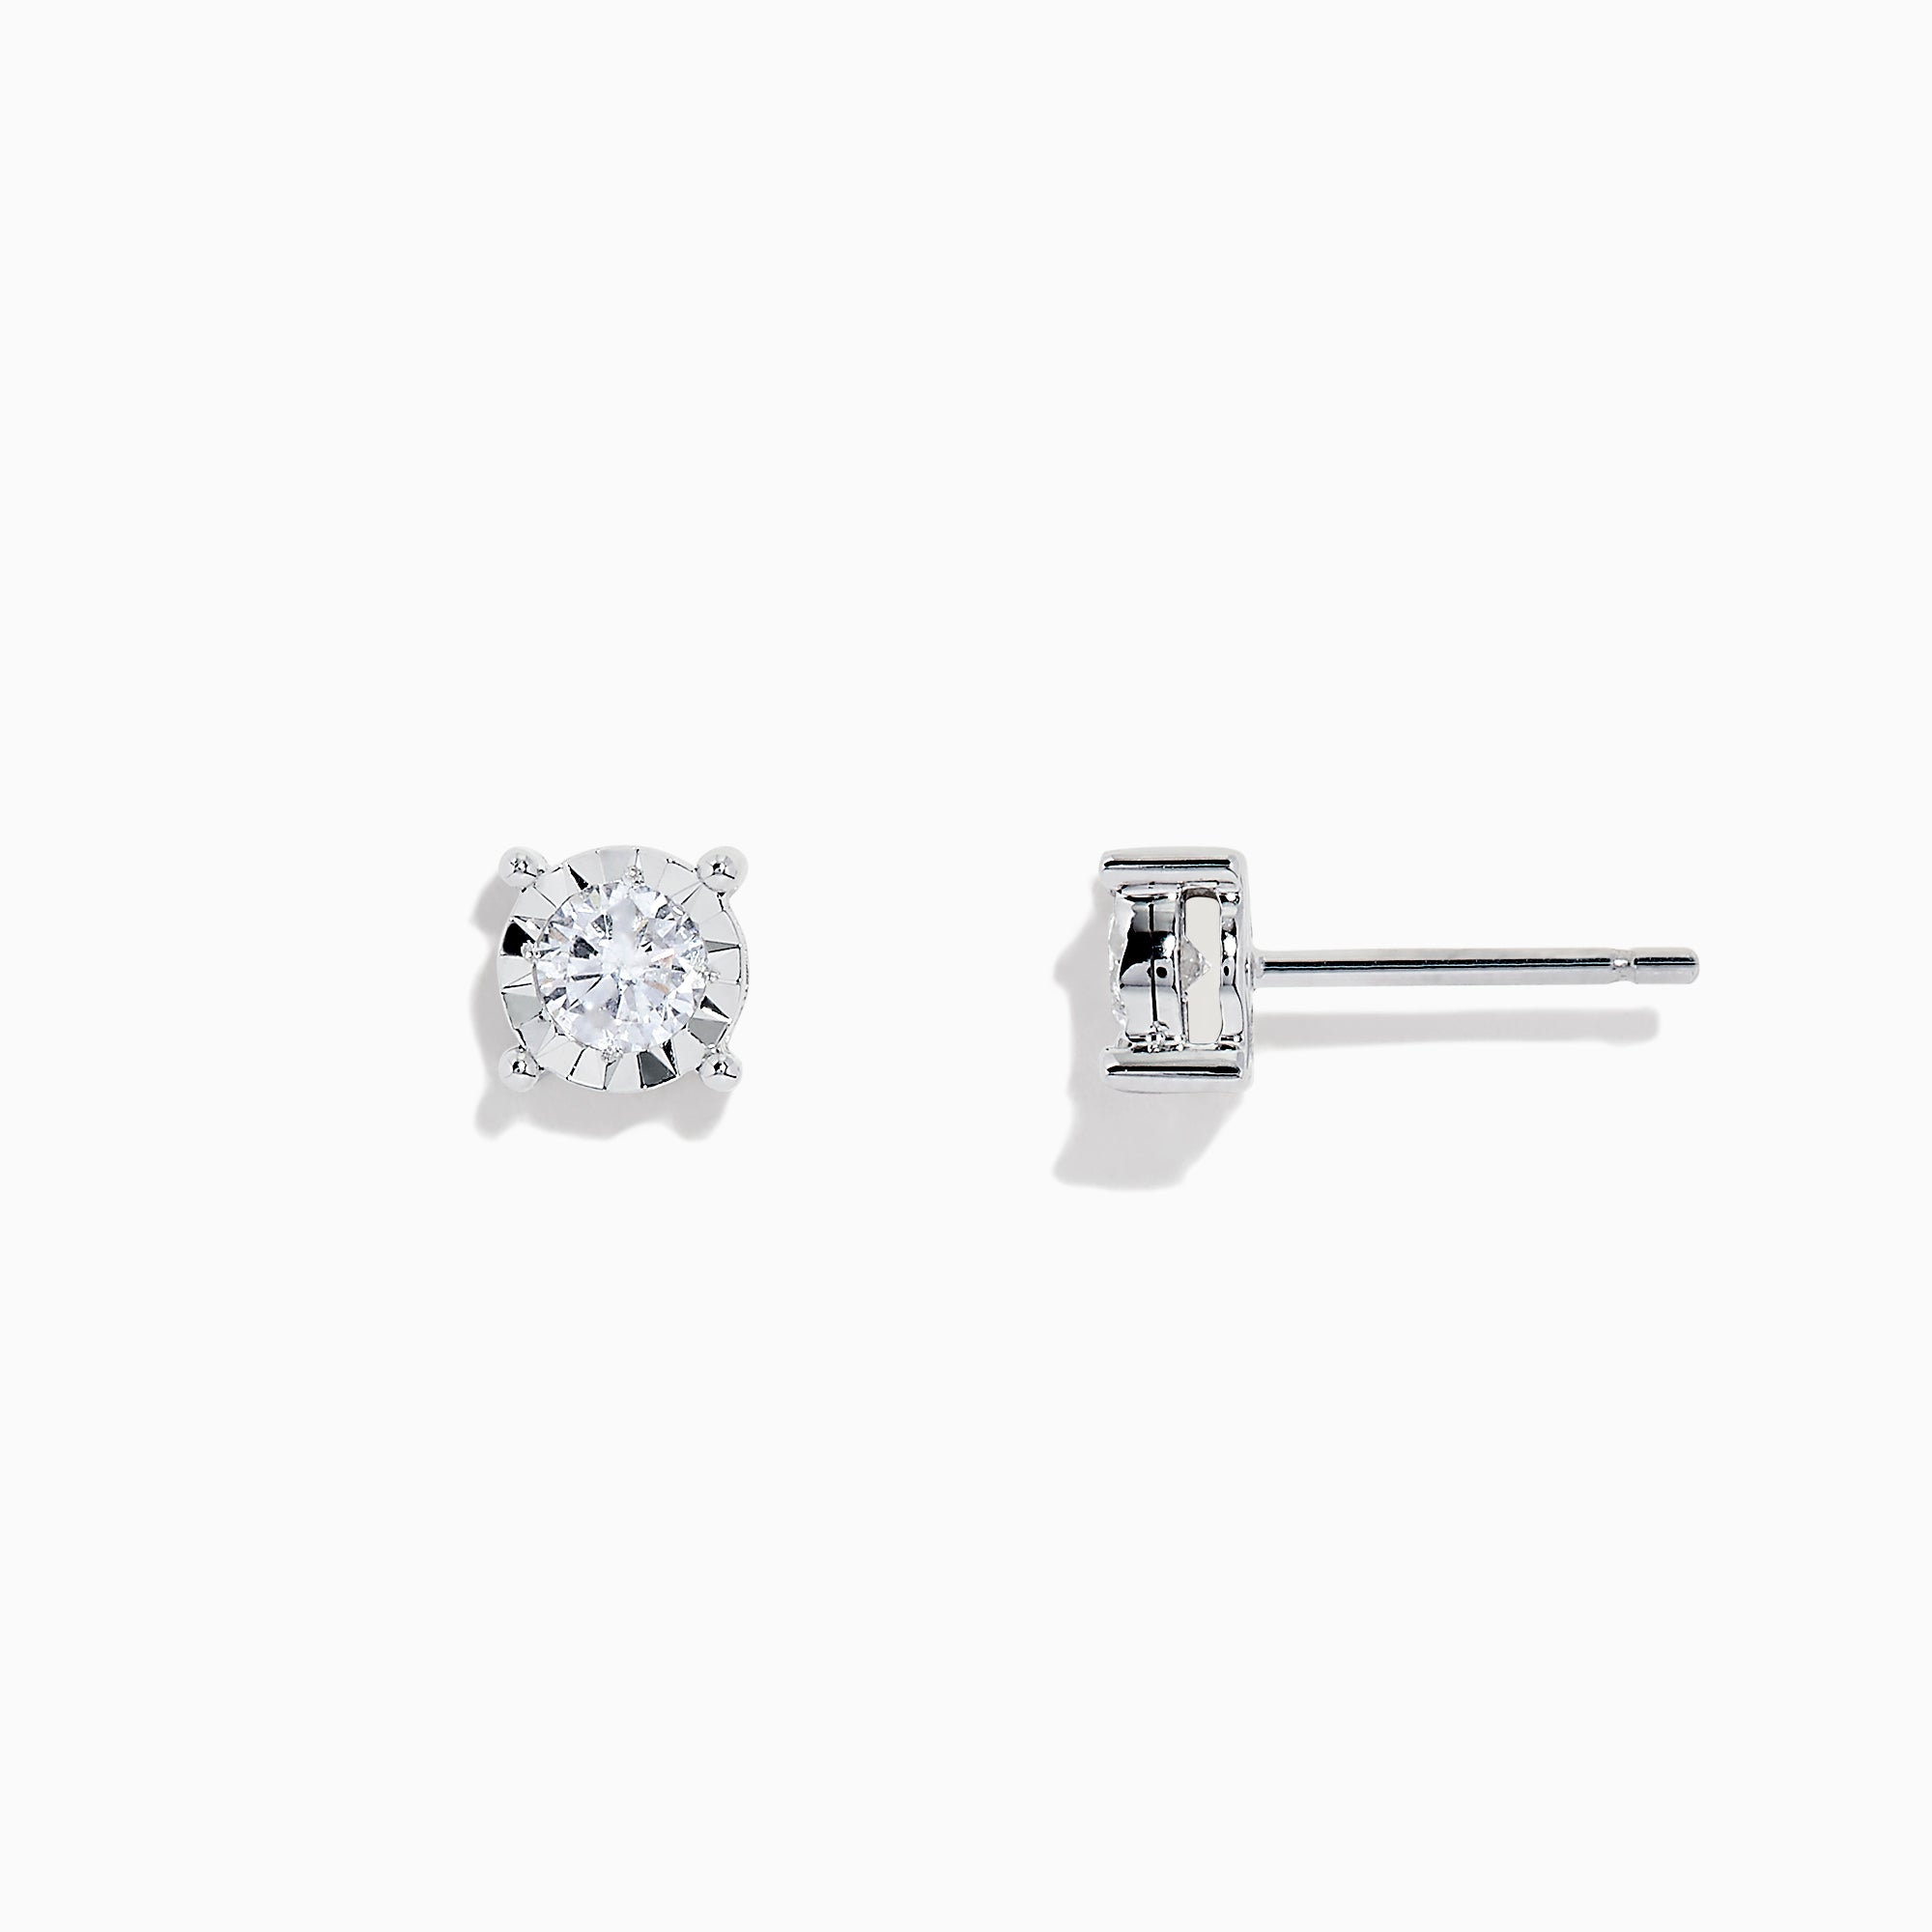 Effy Pave Classica 14K White Gold Diamond Stud Earrings, 0.49 TCW